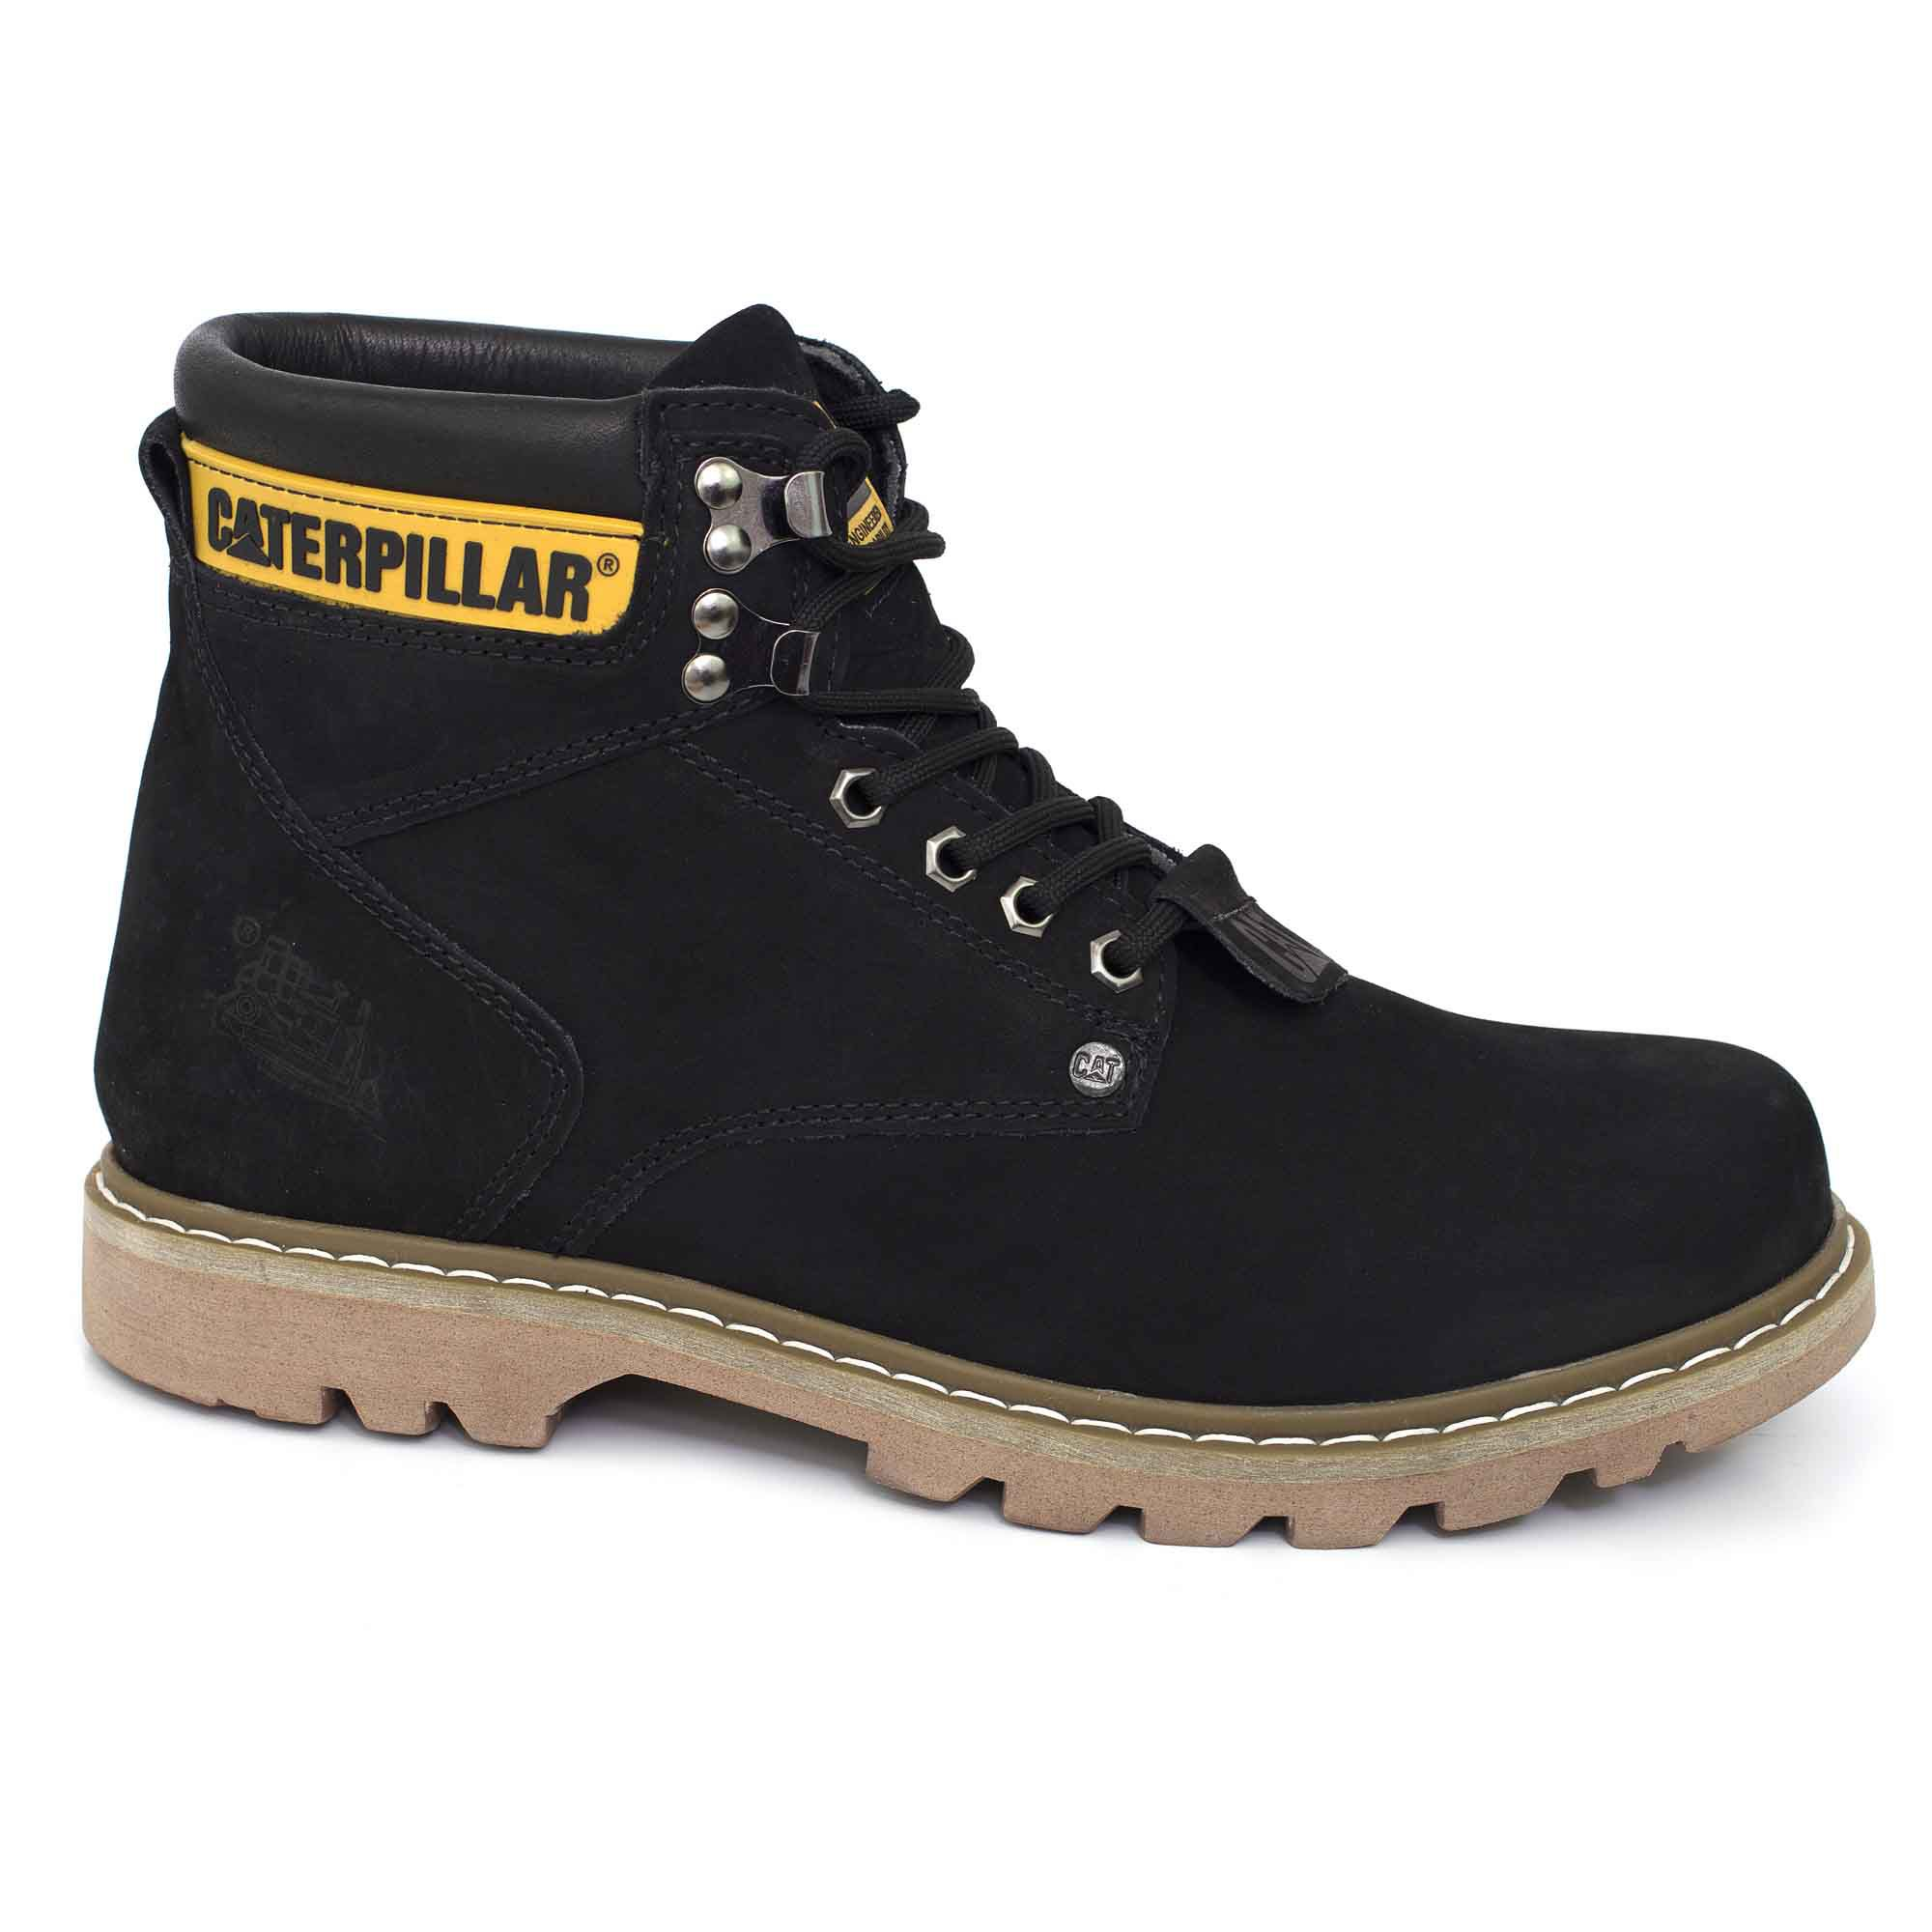 0c9a278a0047a Bota Coturno Caterpillar Second Shift Couro - Black - Madrid Outlet ...